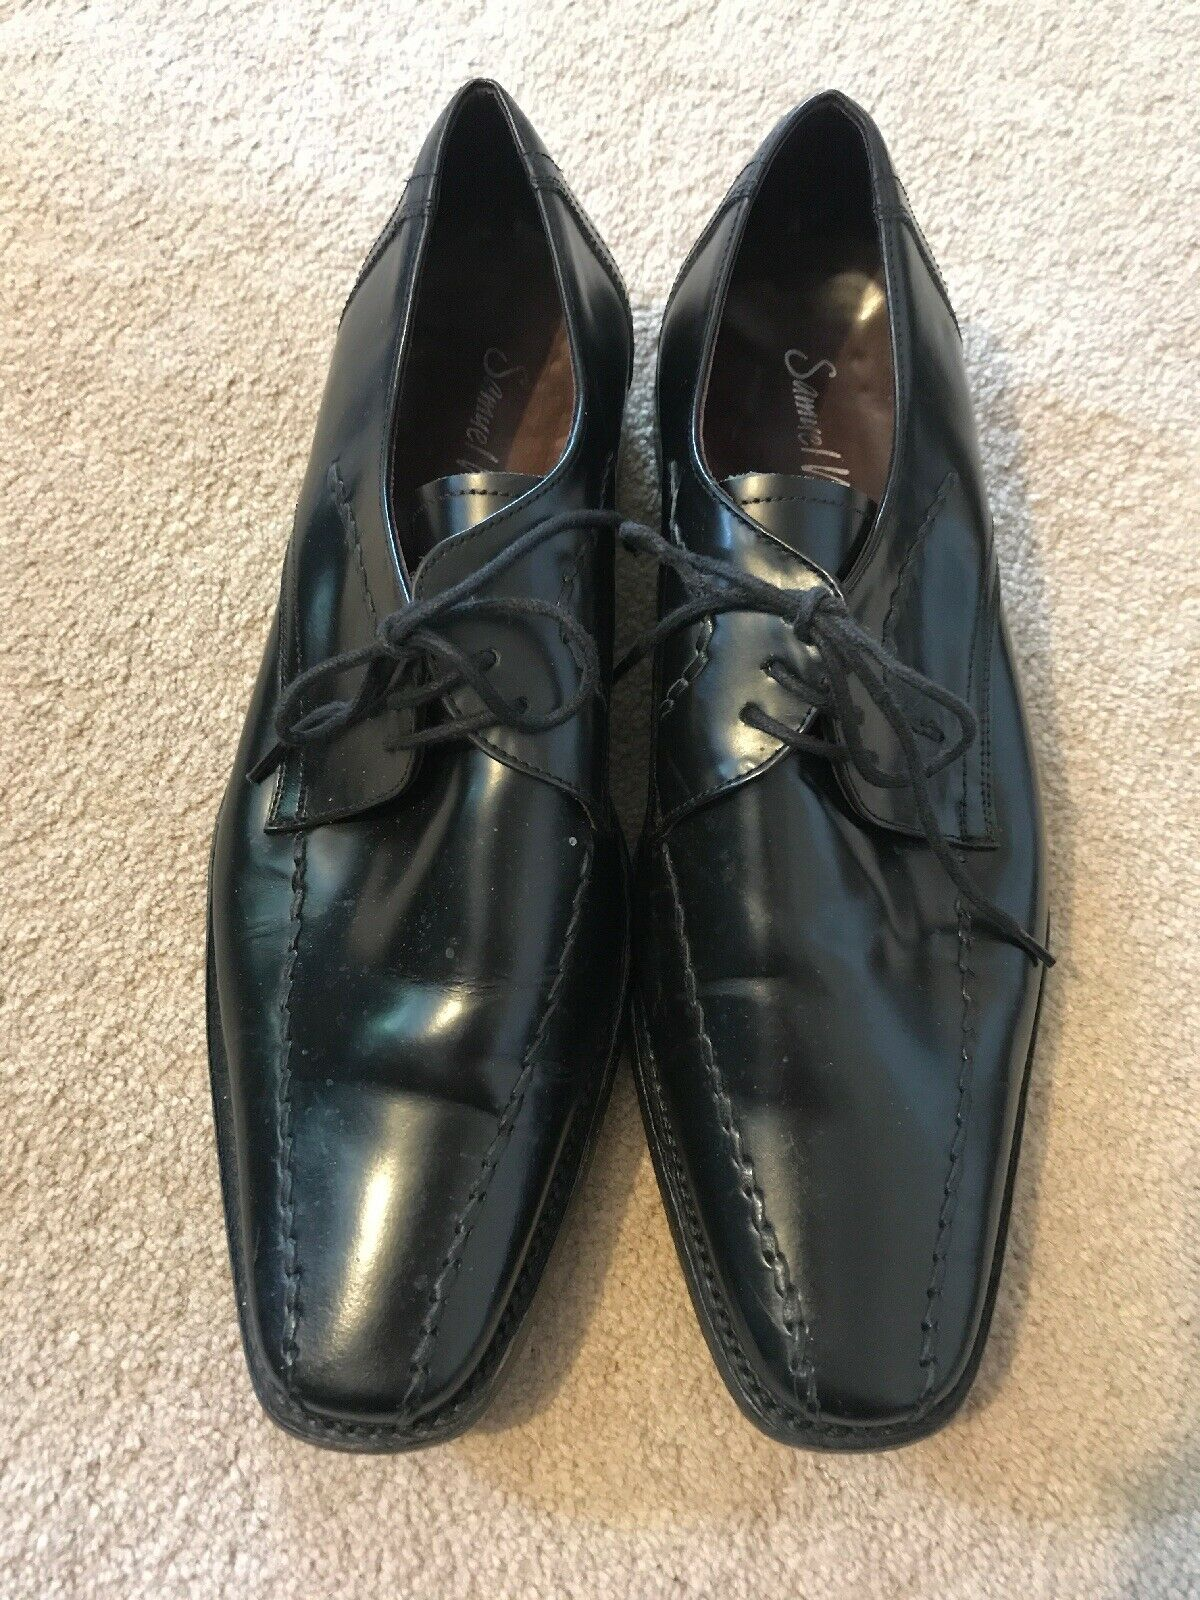 Samuel Windsor Black Leather shoes UK 8